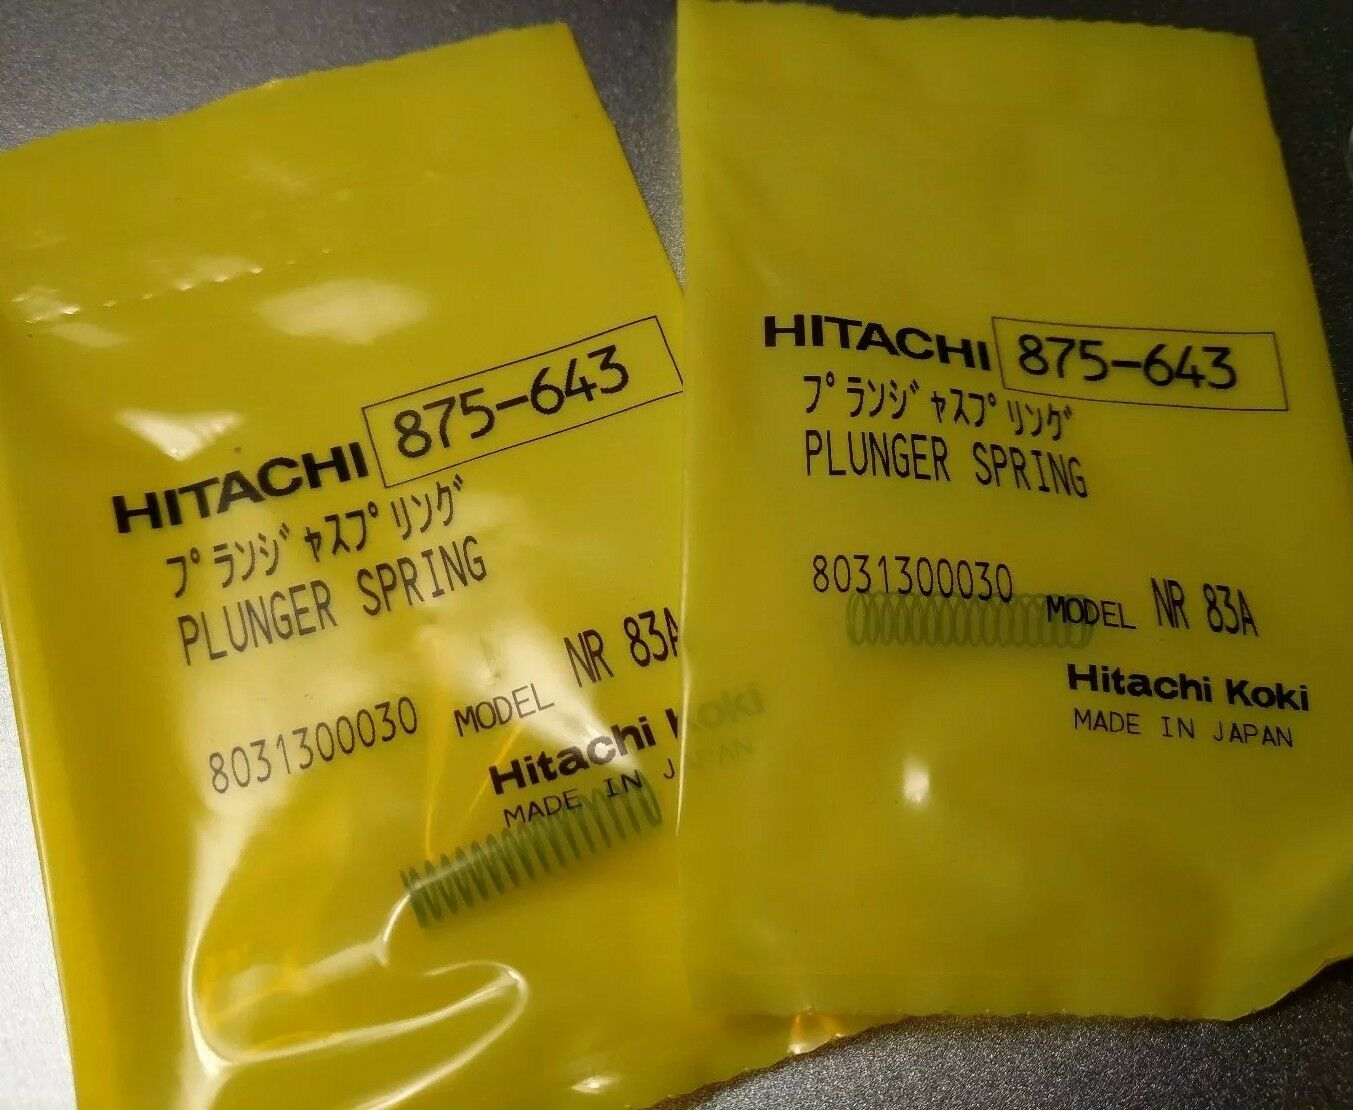 4 Qty Hitachi 875-643 875643 PLUNGER SPRING for NR83A NR83AA